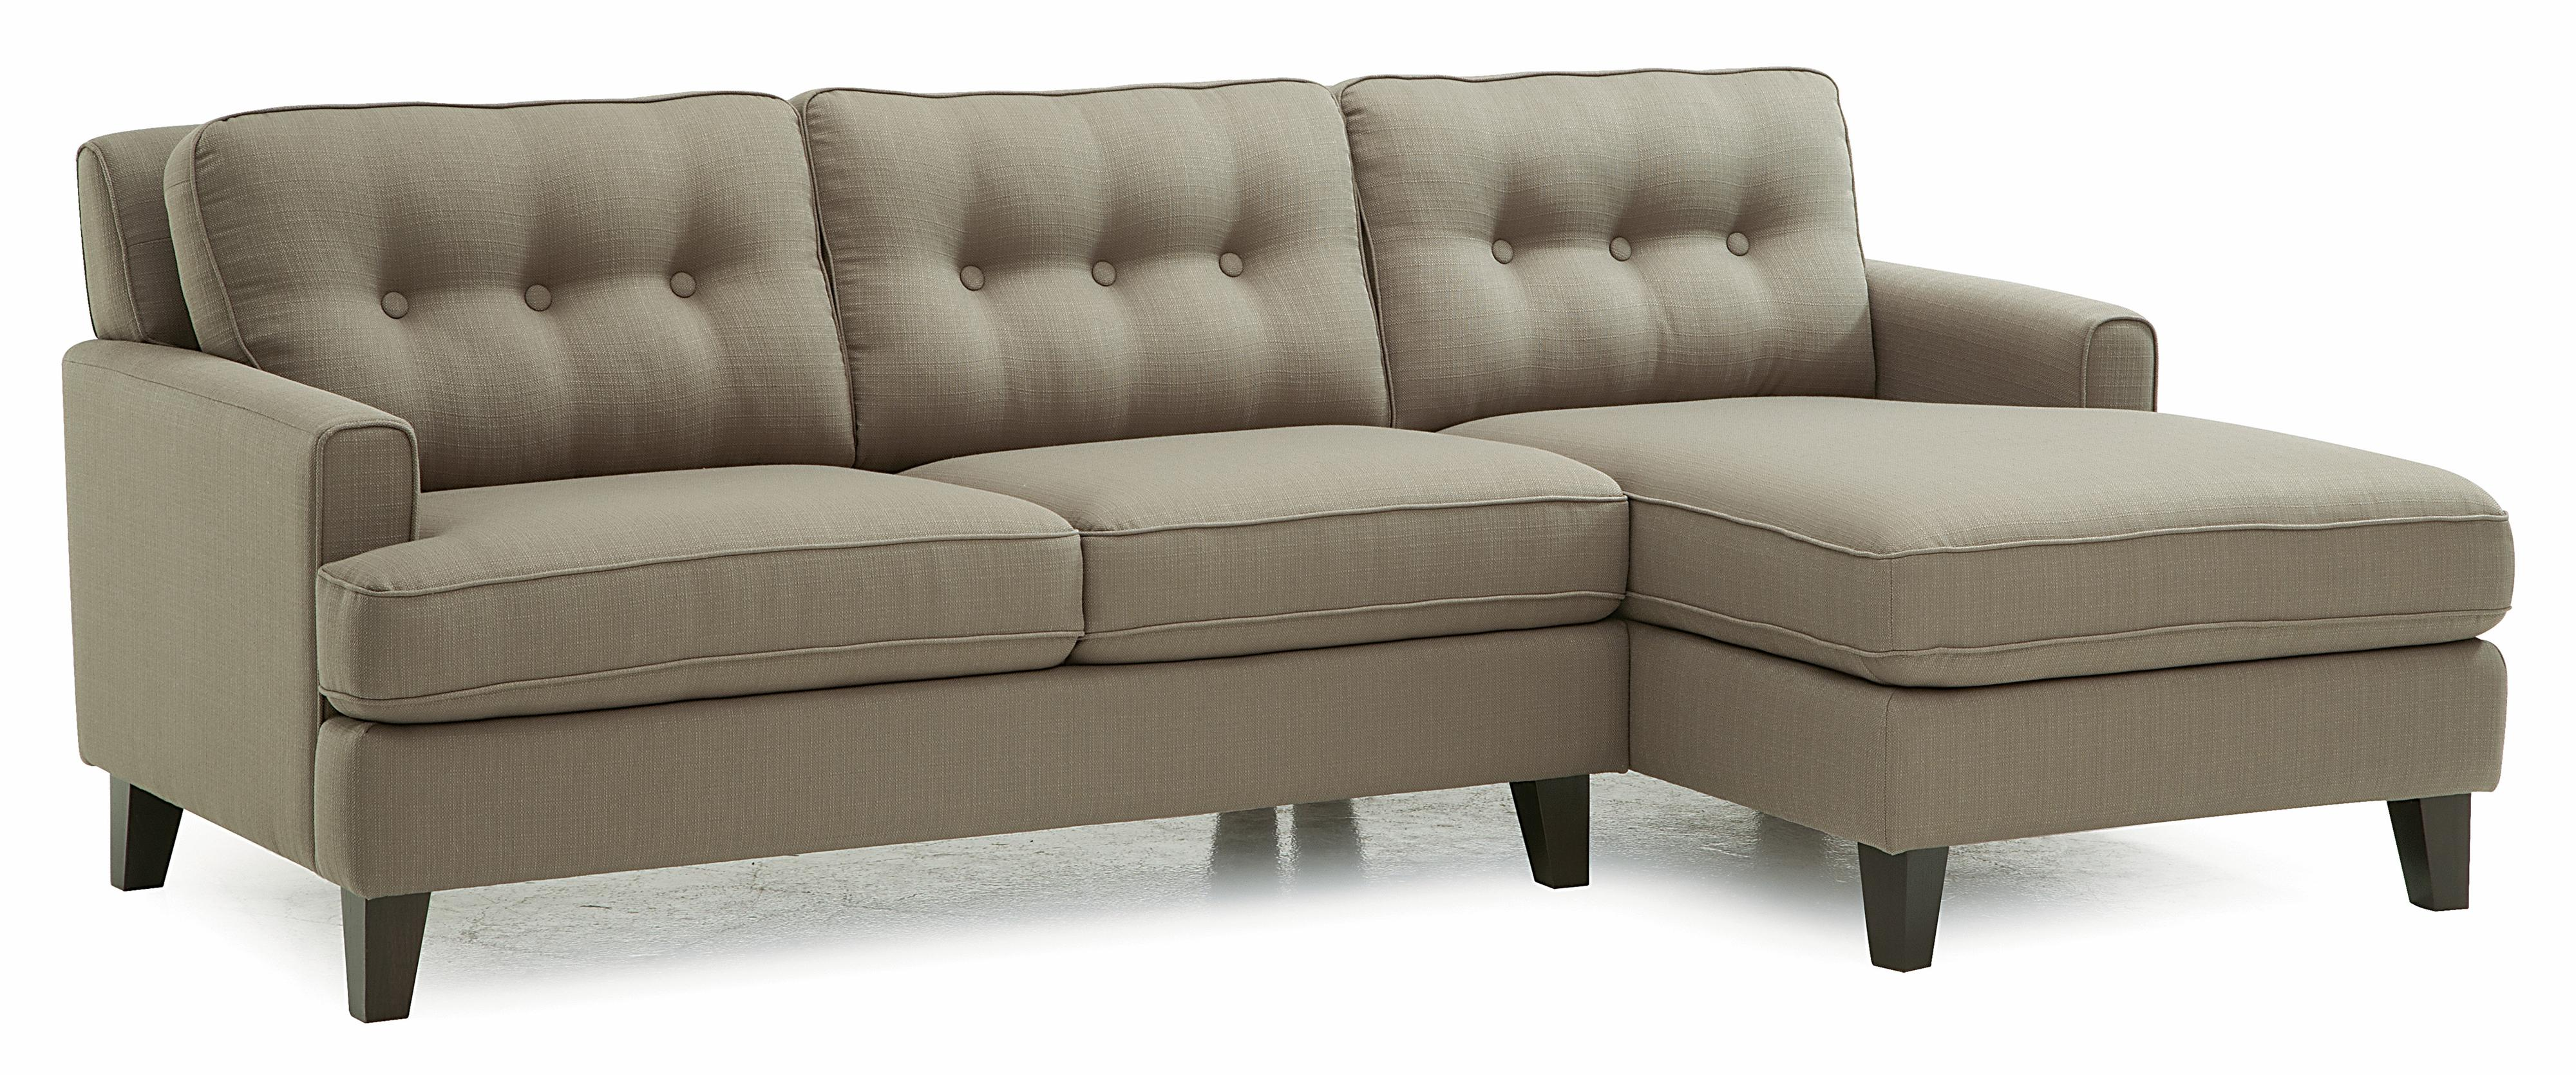 Barbara Two Piece Sectional Sofa with RHF Chaise by Palliser at Jordan's Home Furnishings